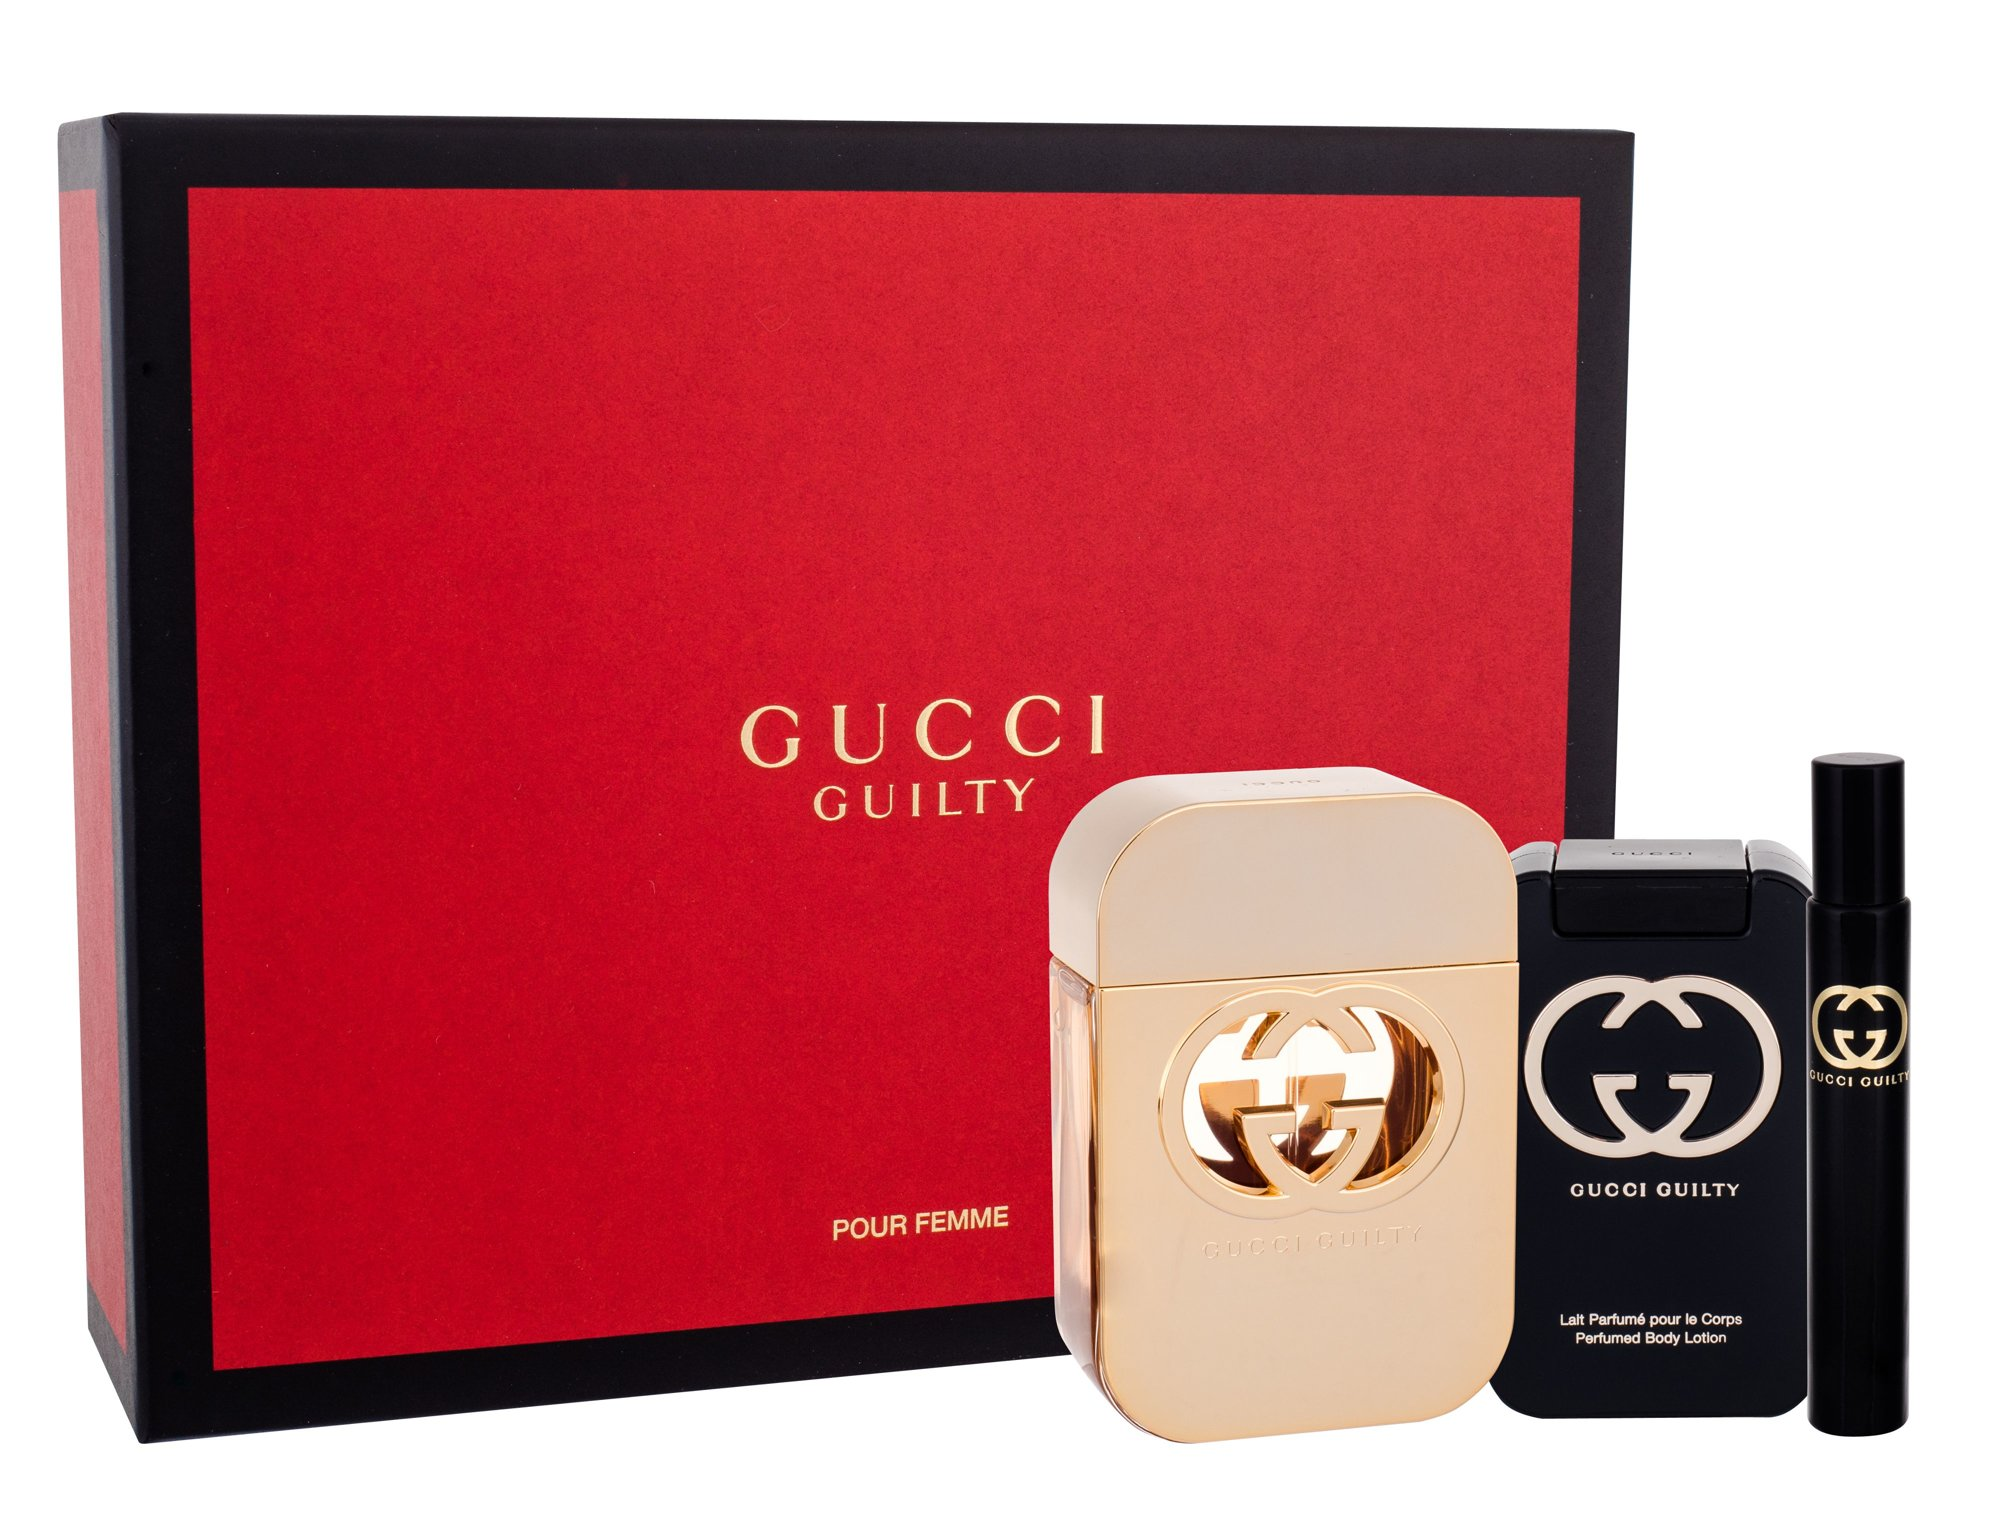 Gucci Gucci Guilty Eau de Toilette 75ml